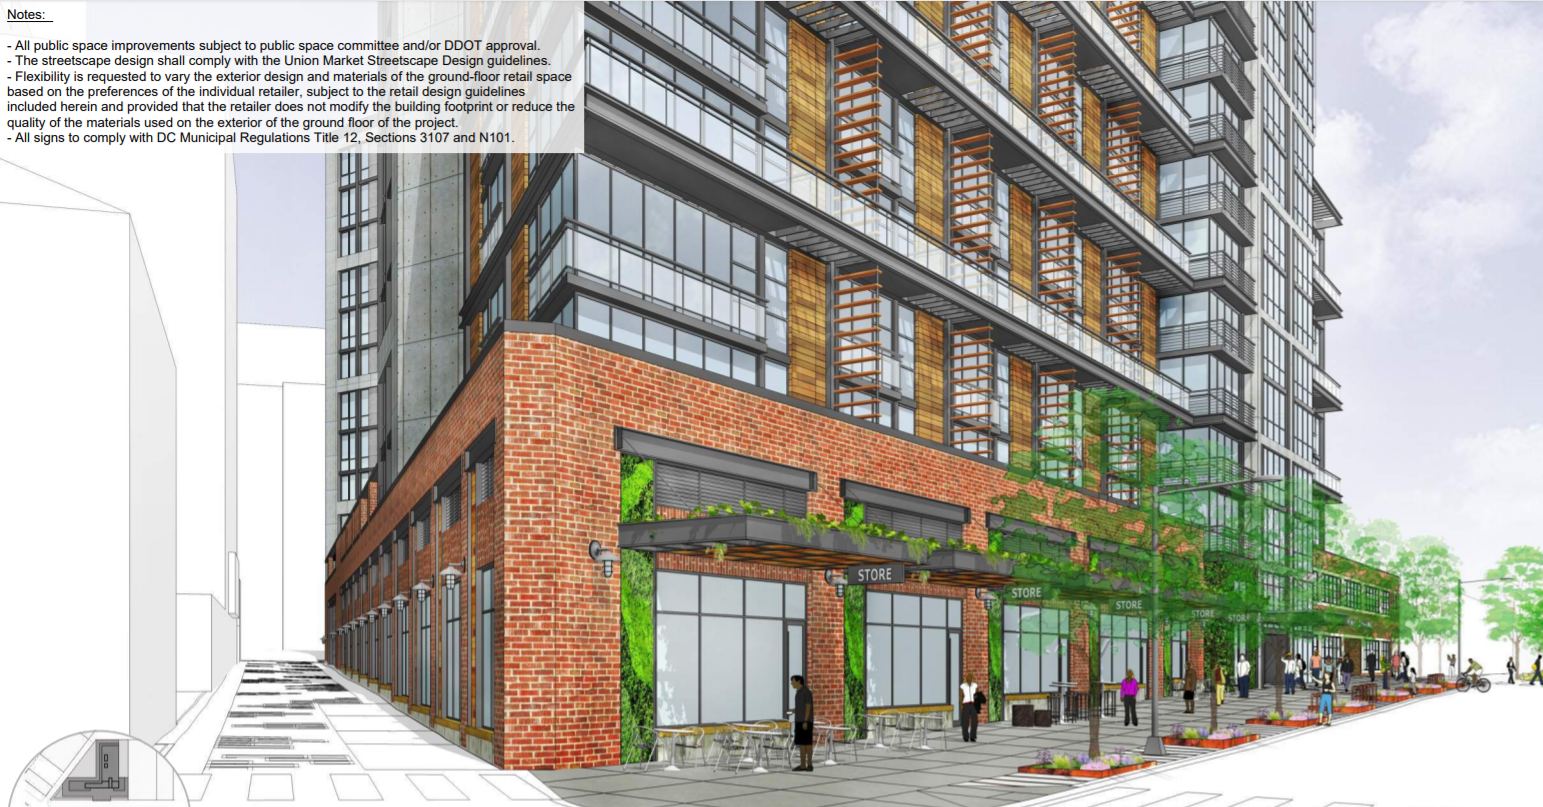 A Few New Looks for Union Market Maurice Electric Redevelopment: Figure 3